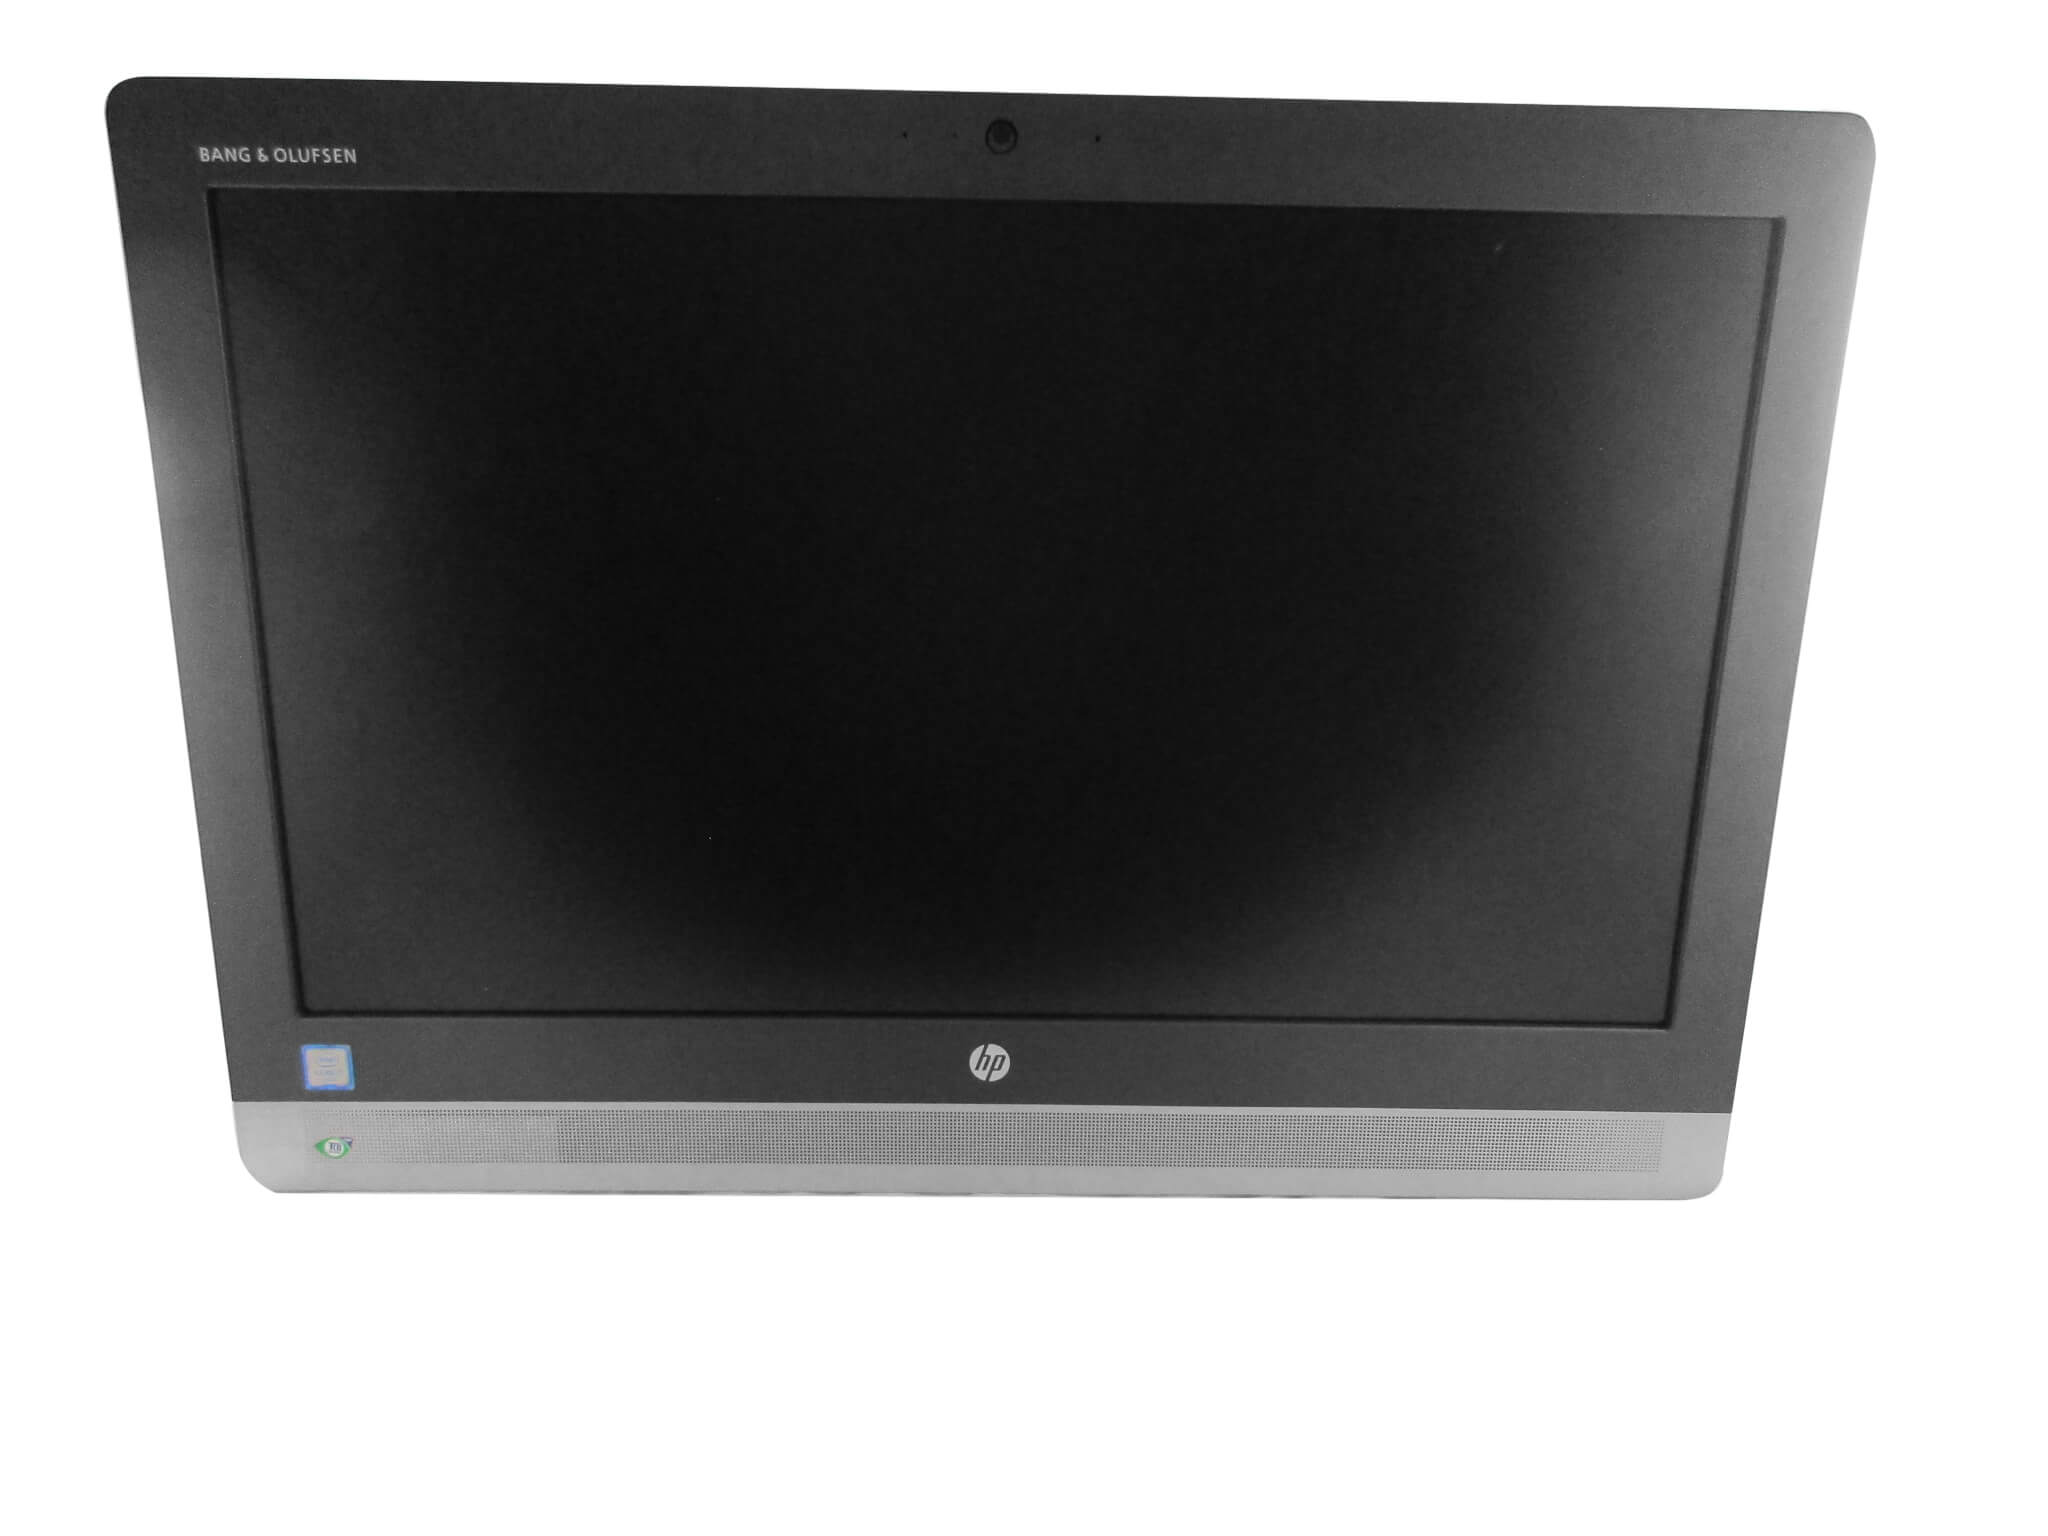 "HP EliteOne 800 G2 All-in-One Komplettlösung RAM 0 MB kein HDD keine Grafiken GigE Monitor: LED 58.4 cm 23"" 1920 x 1080 Full HD CTO, B-Ware"